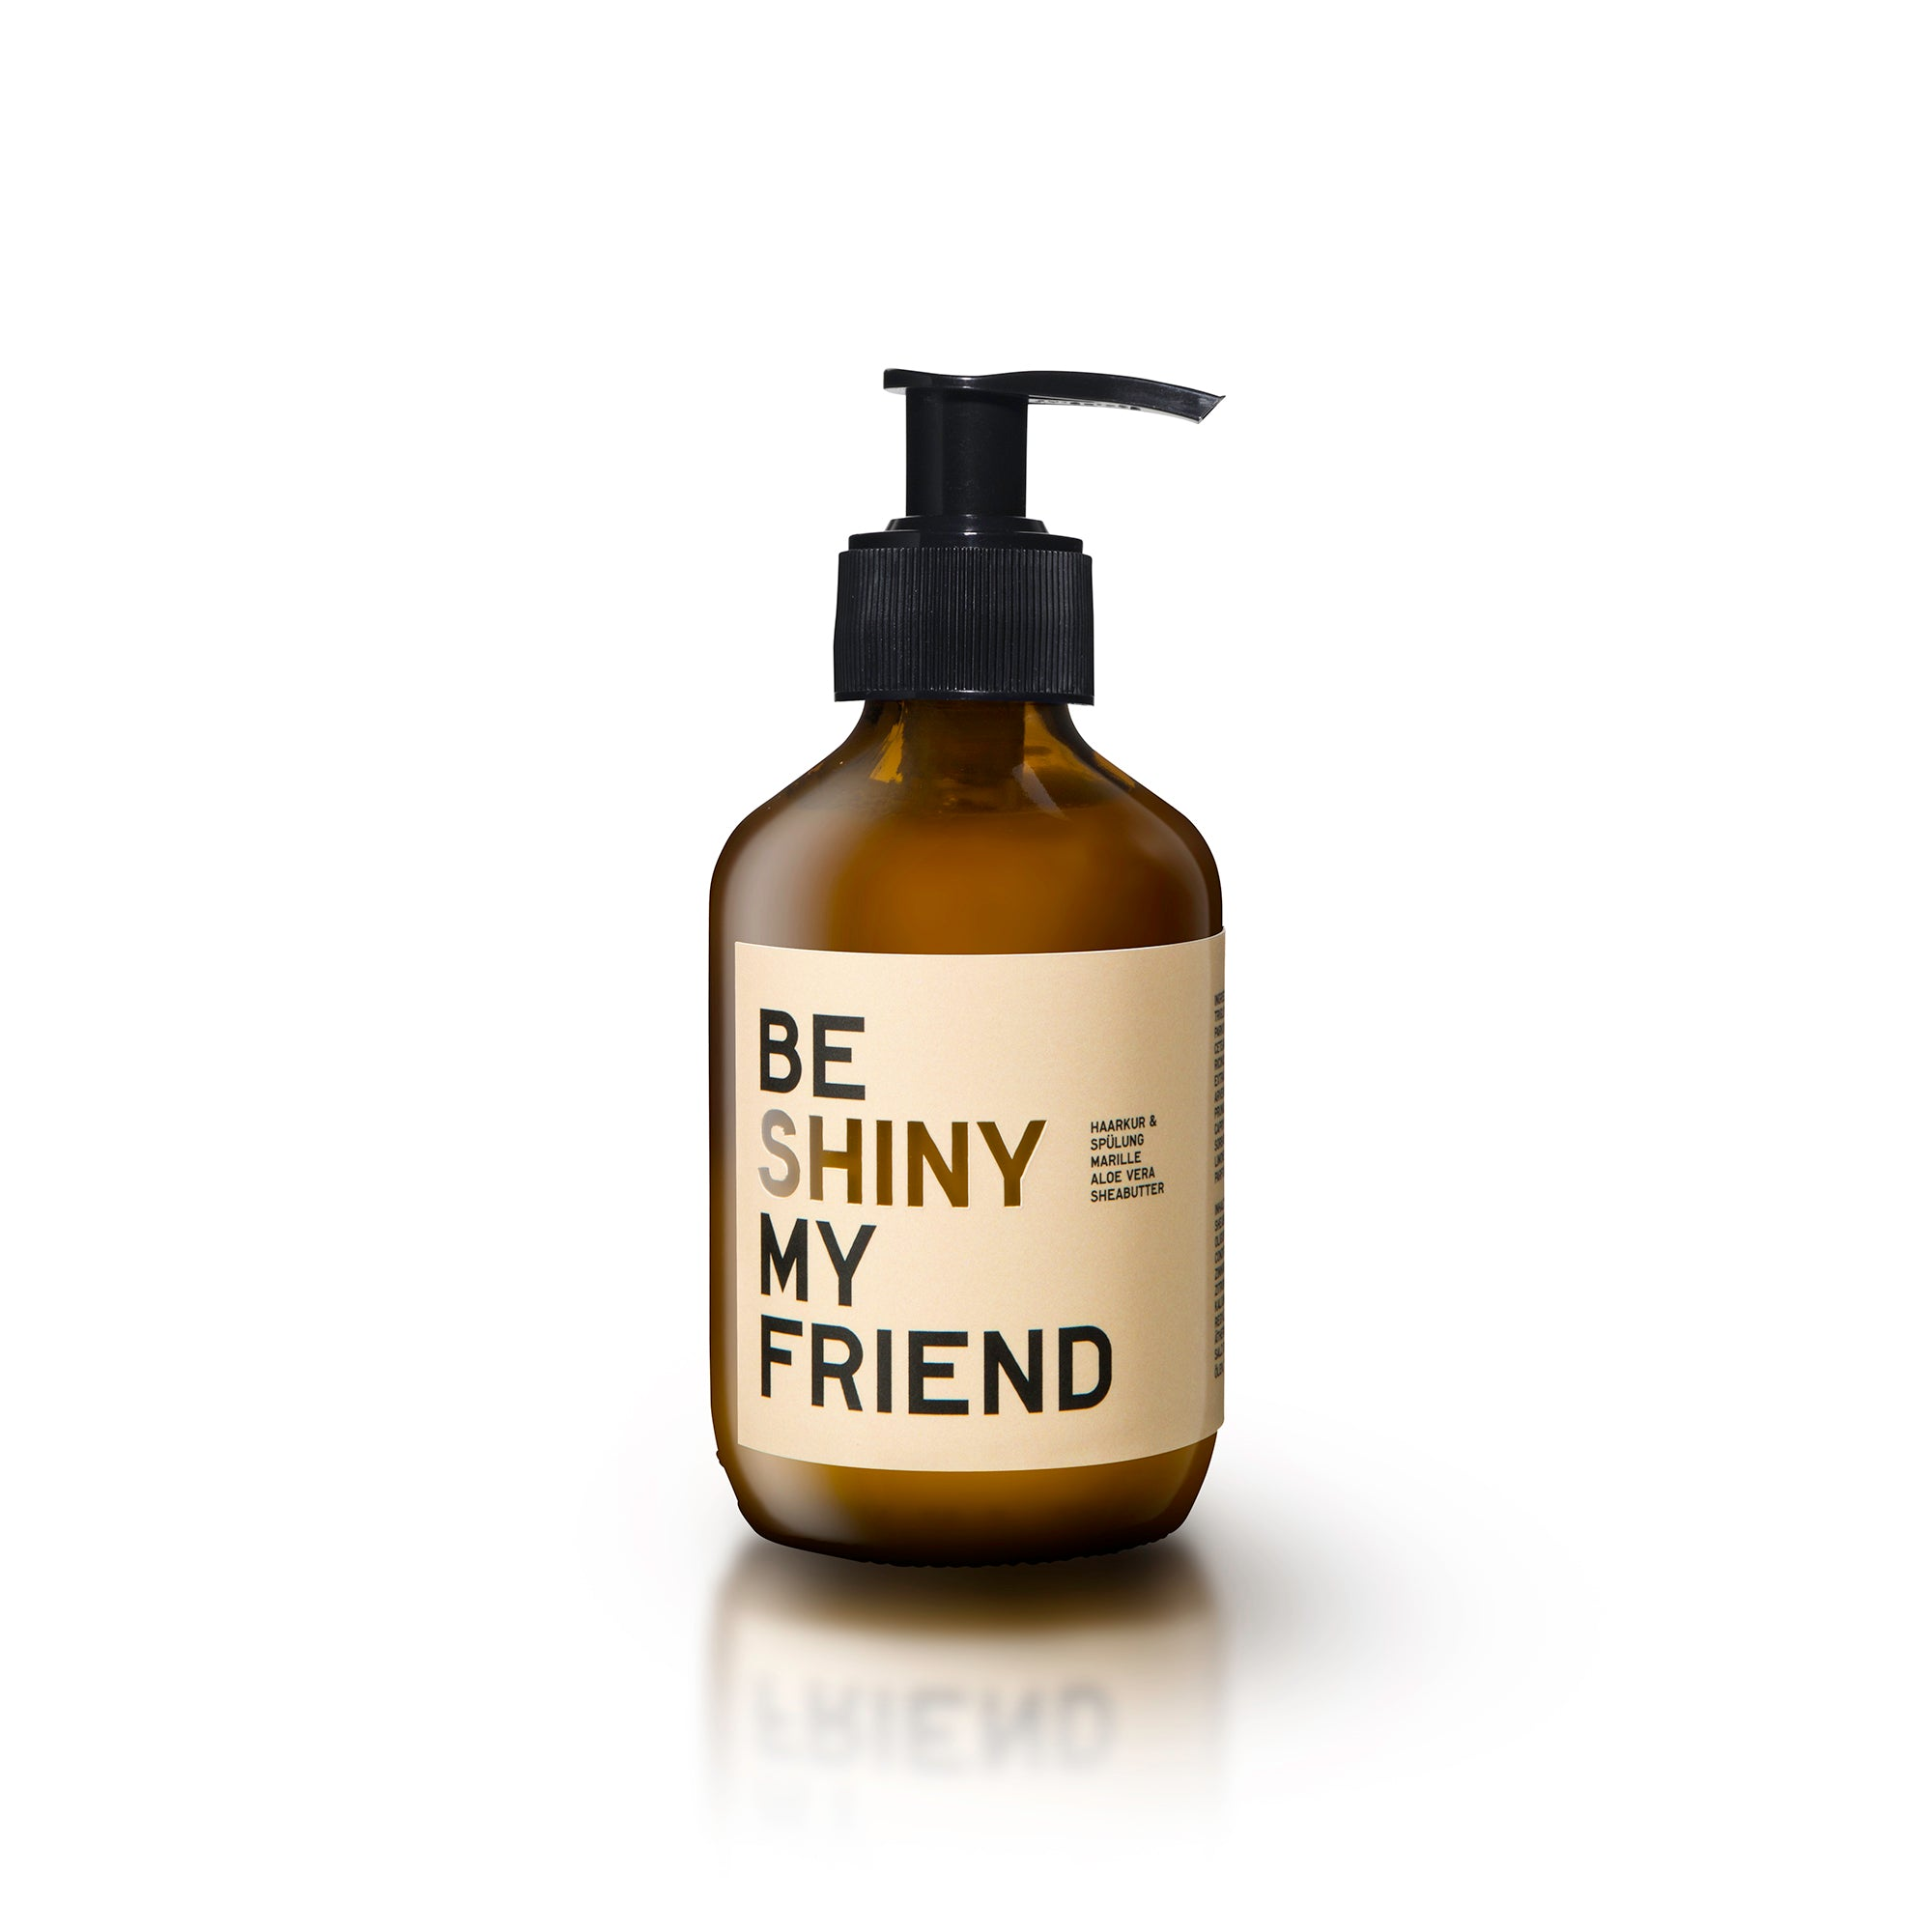 BE SHINY- Haarkur & Spülung Marille/Aloe Vera/Shea-Butter 200ml